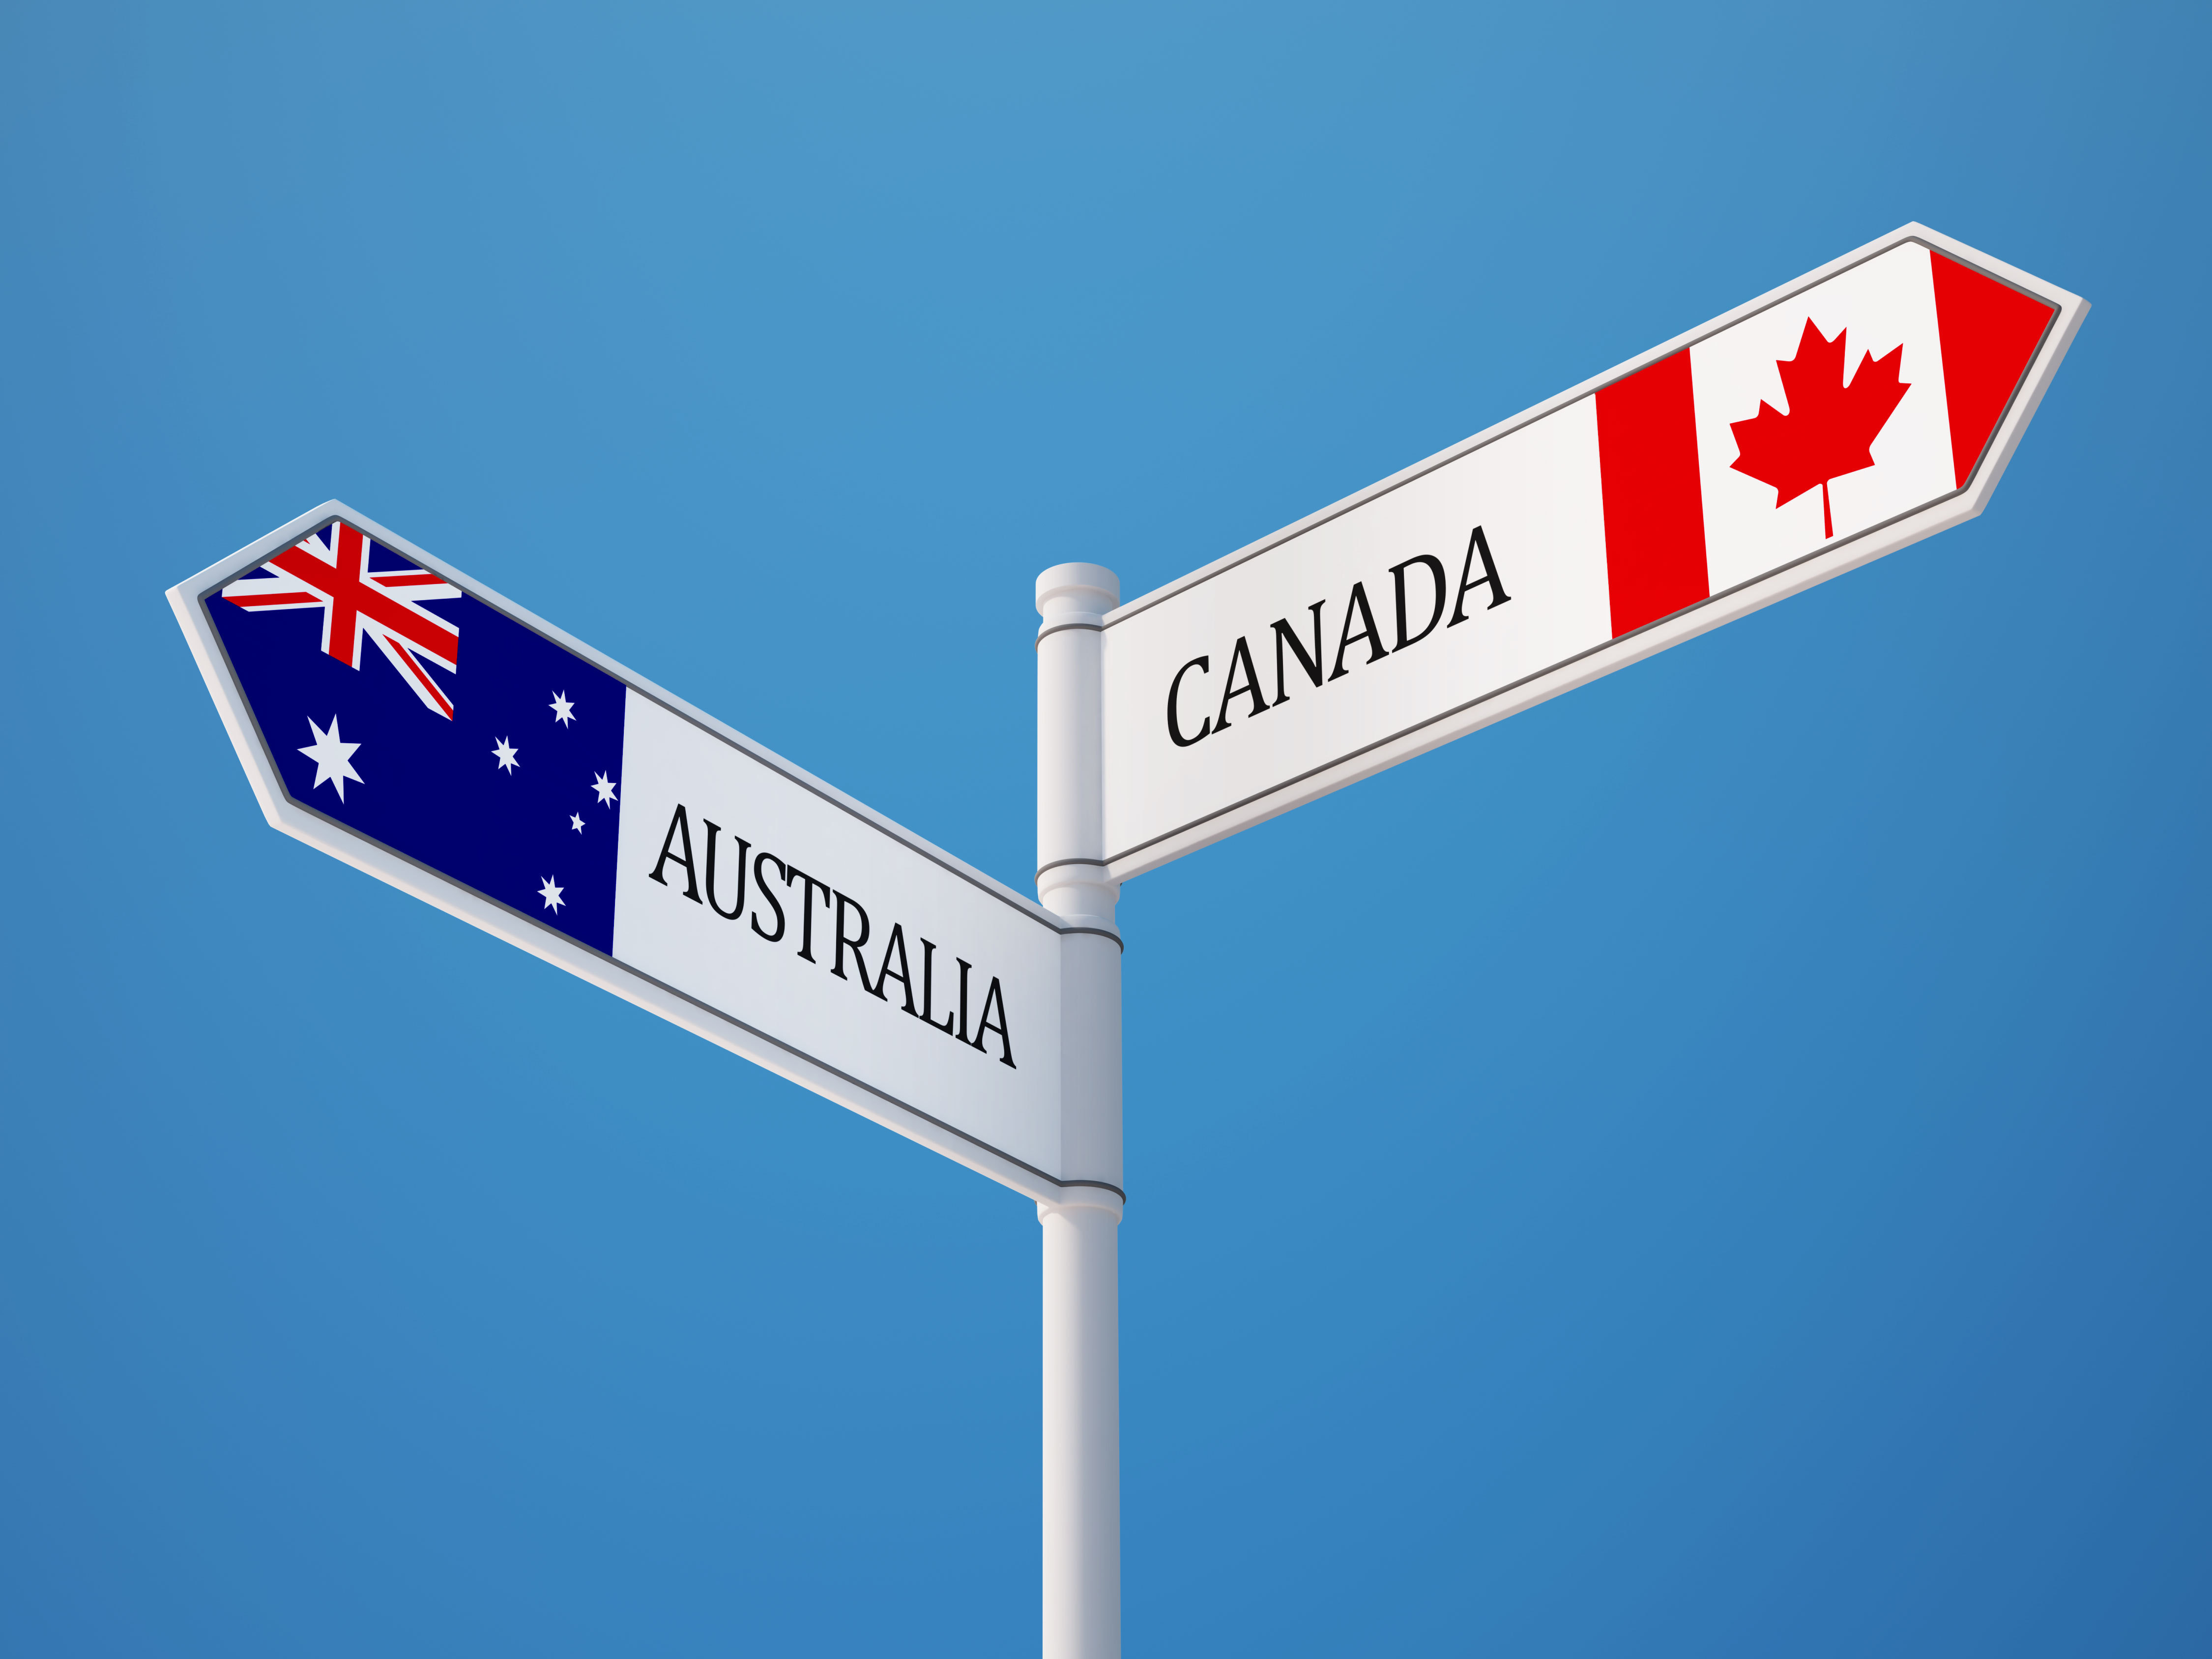 Australian Banks: Outperformance vs Canada (akin to Canadian Bank #4)